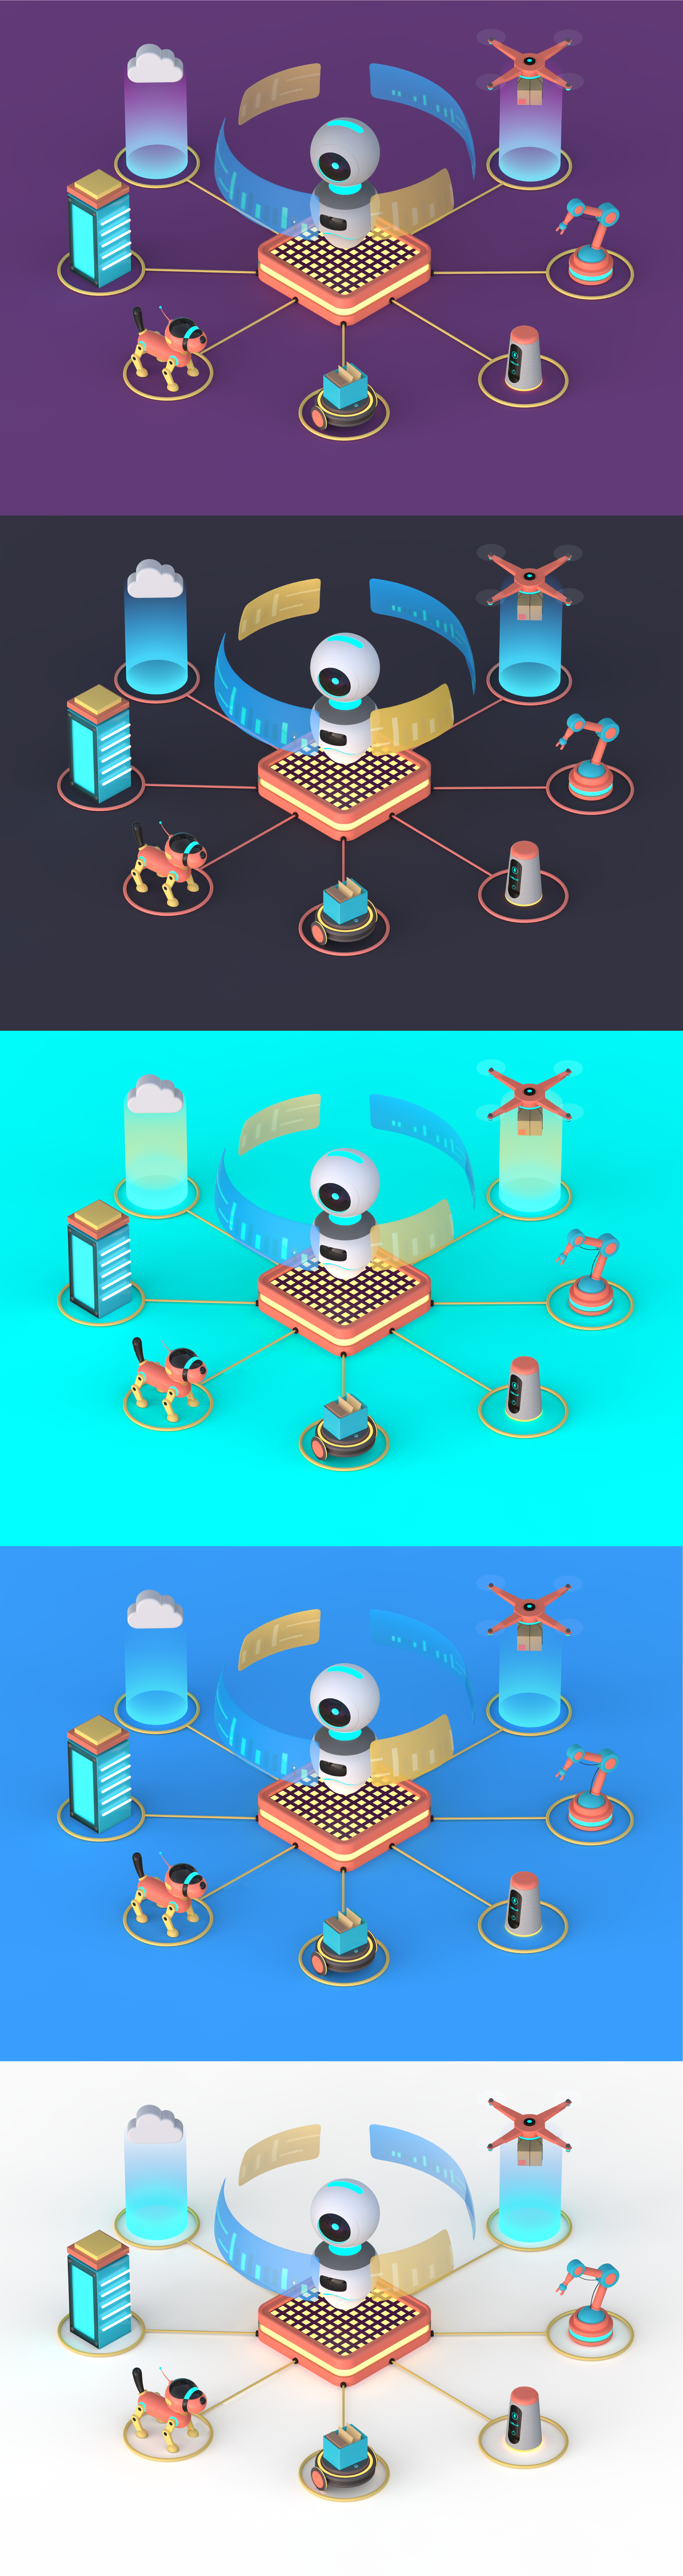 3D Artificial Intelligence Illustration Preview Image